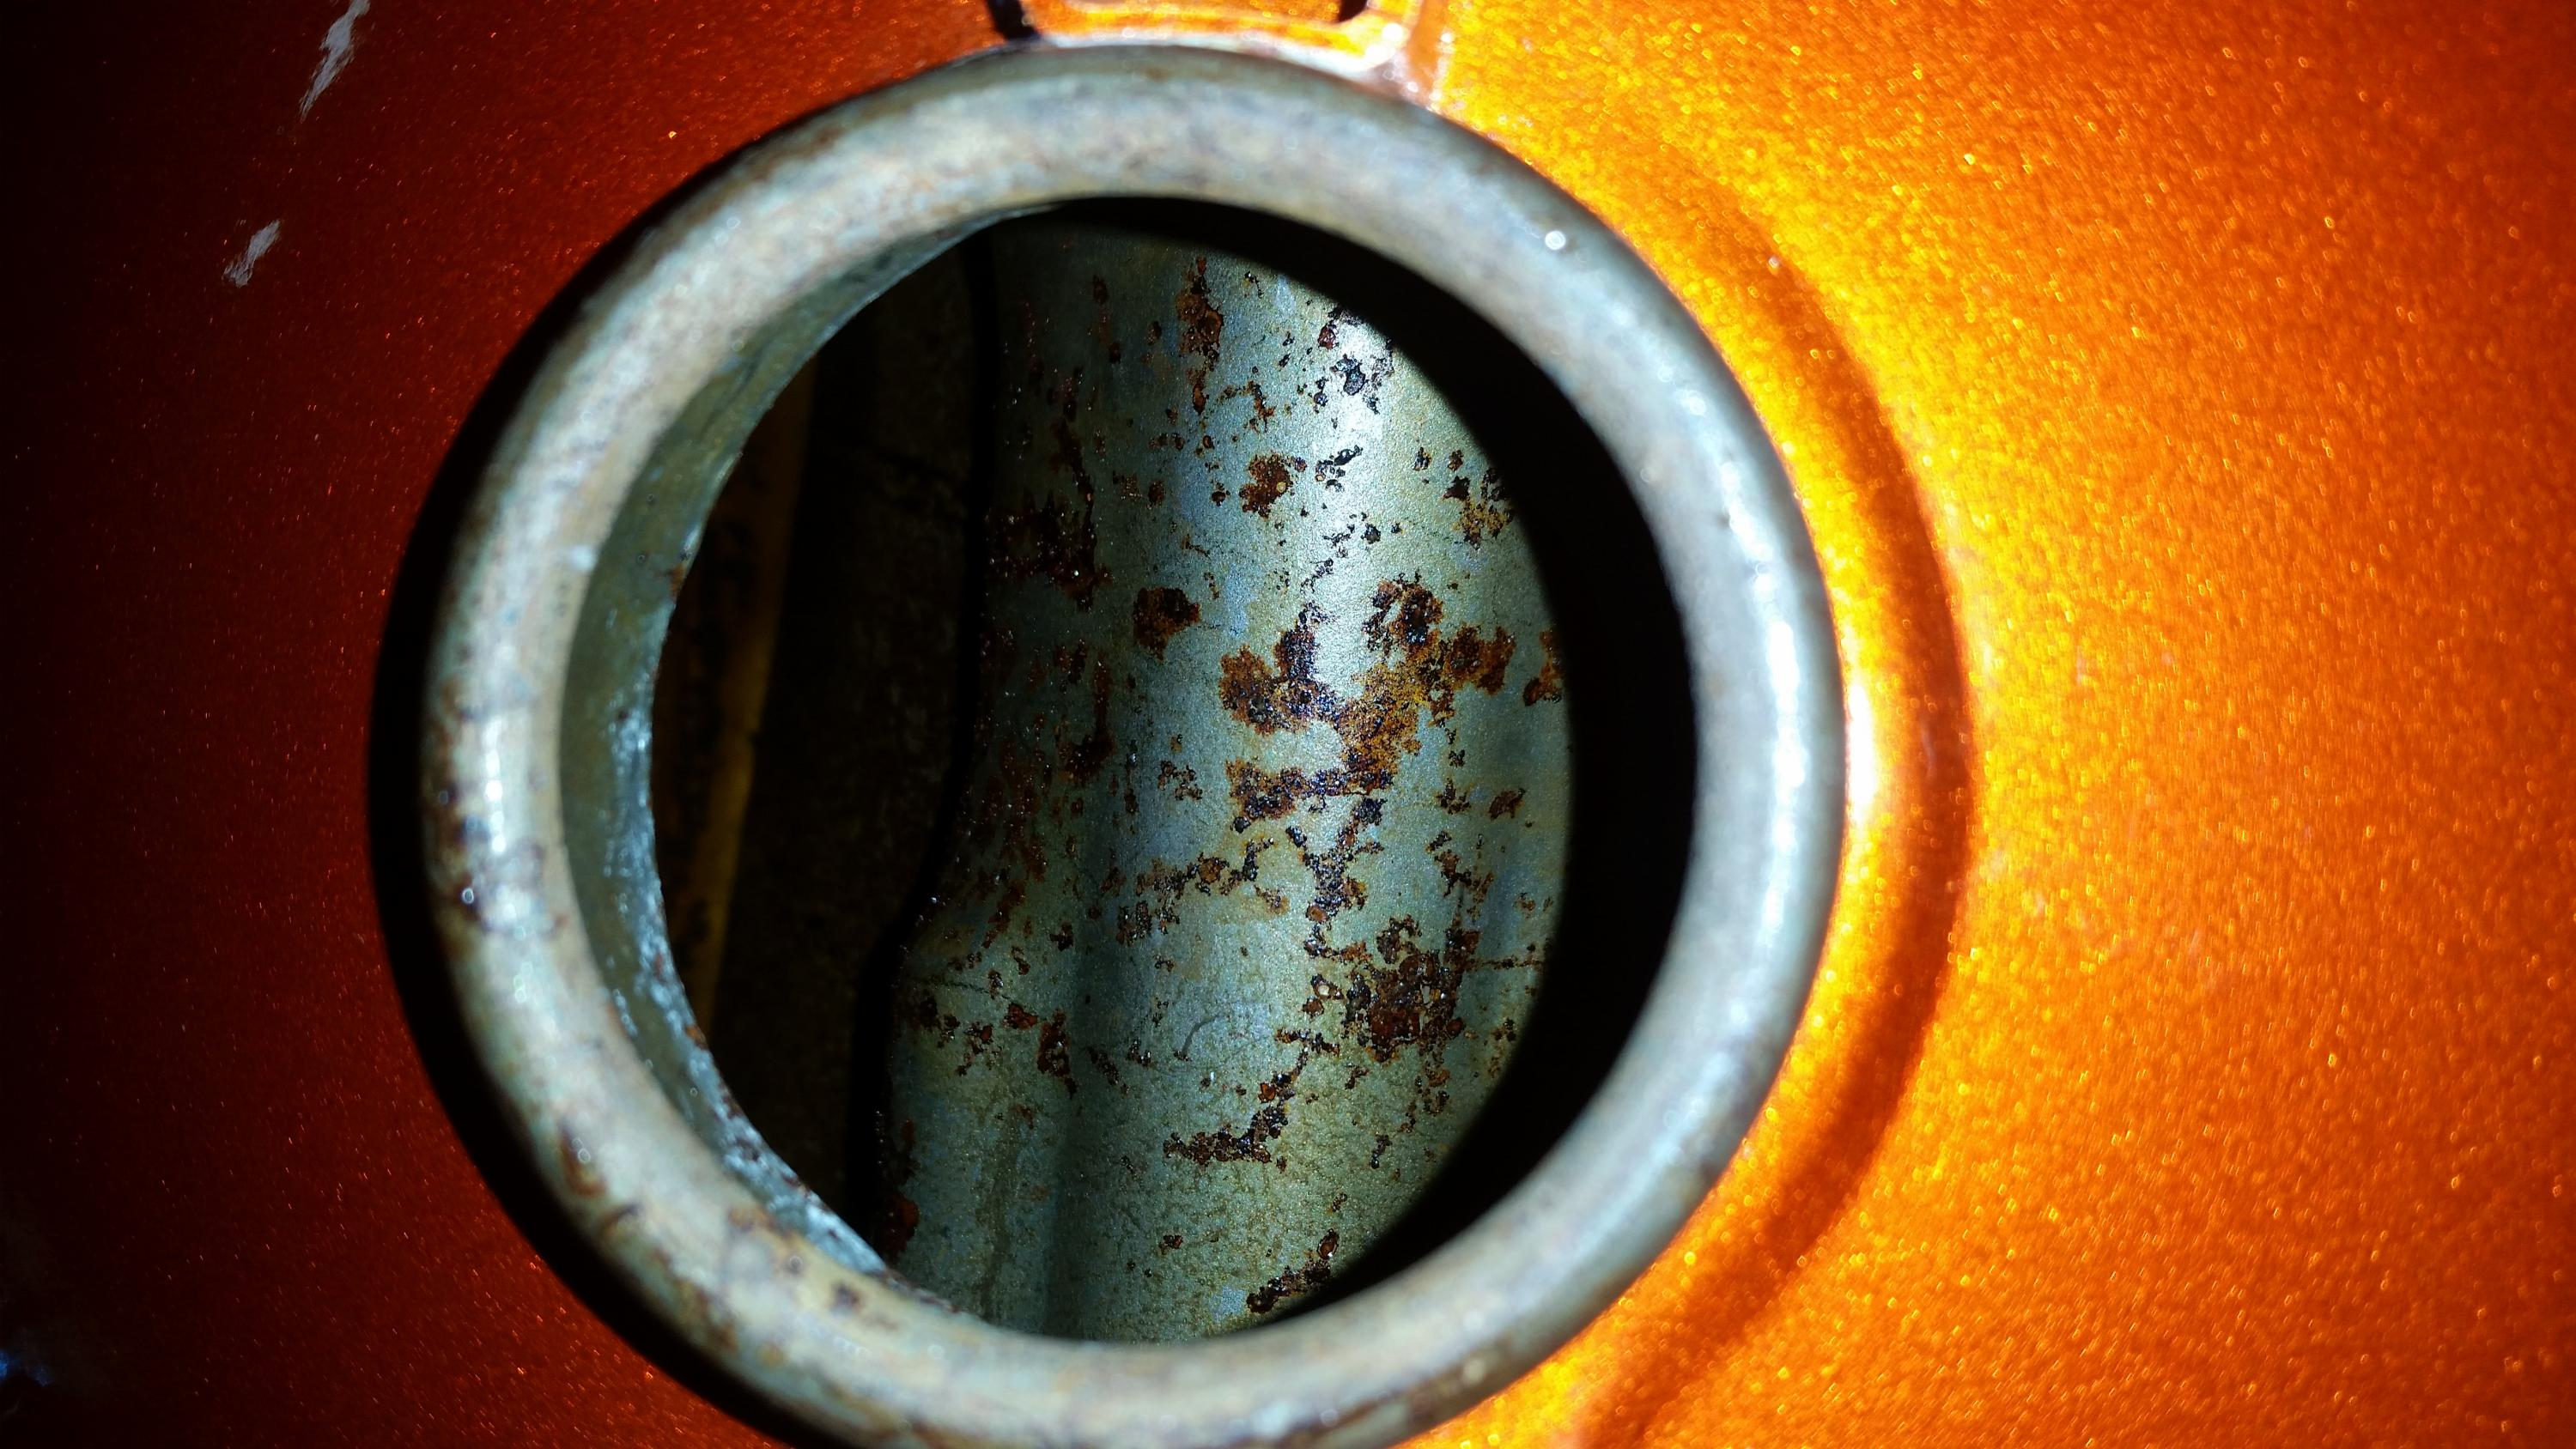 Fuel Tank Rust - how much is too much?-20190531_114220.jpg